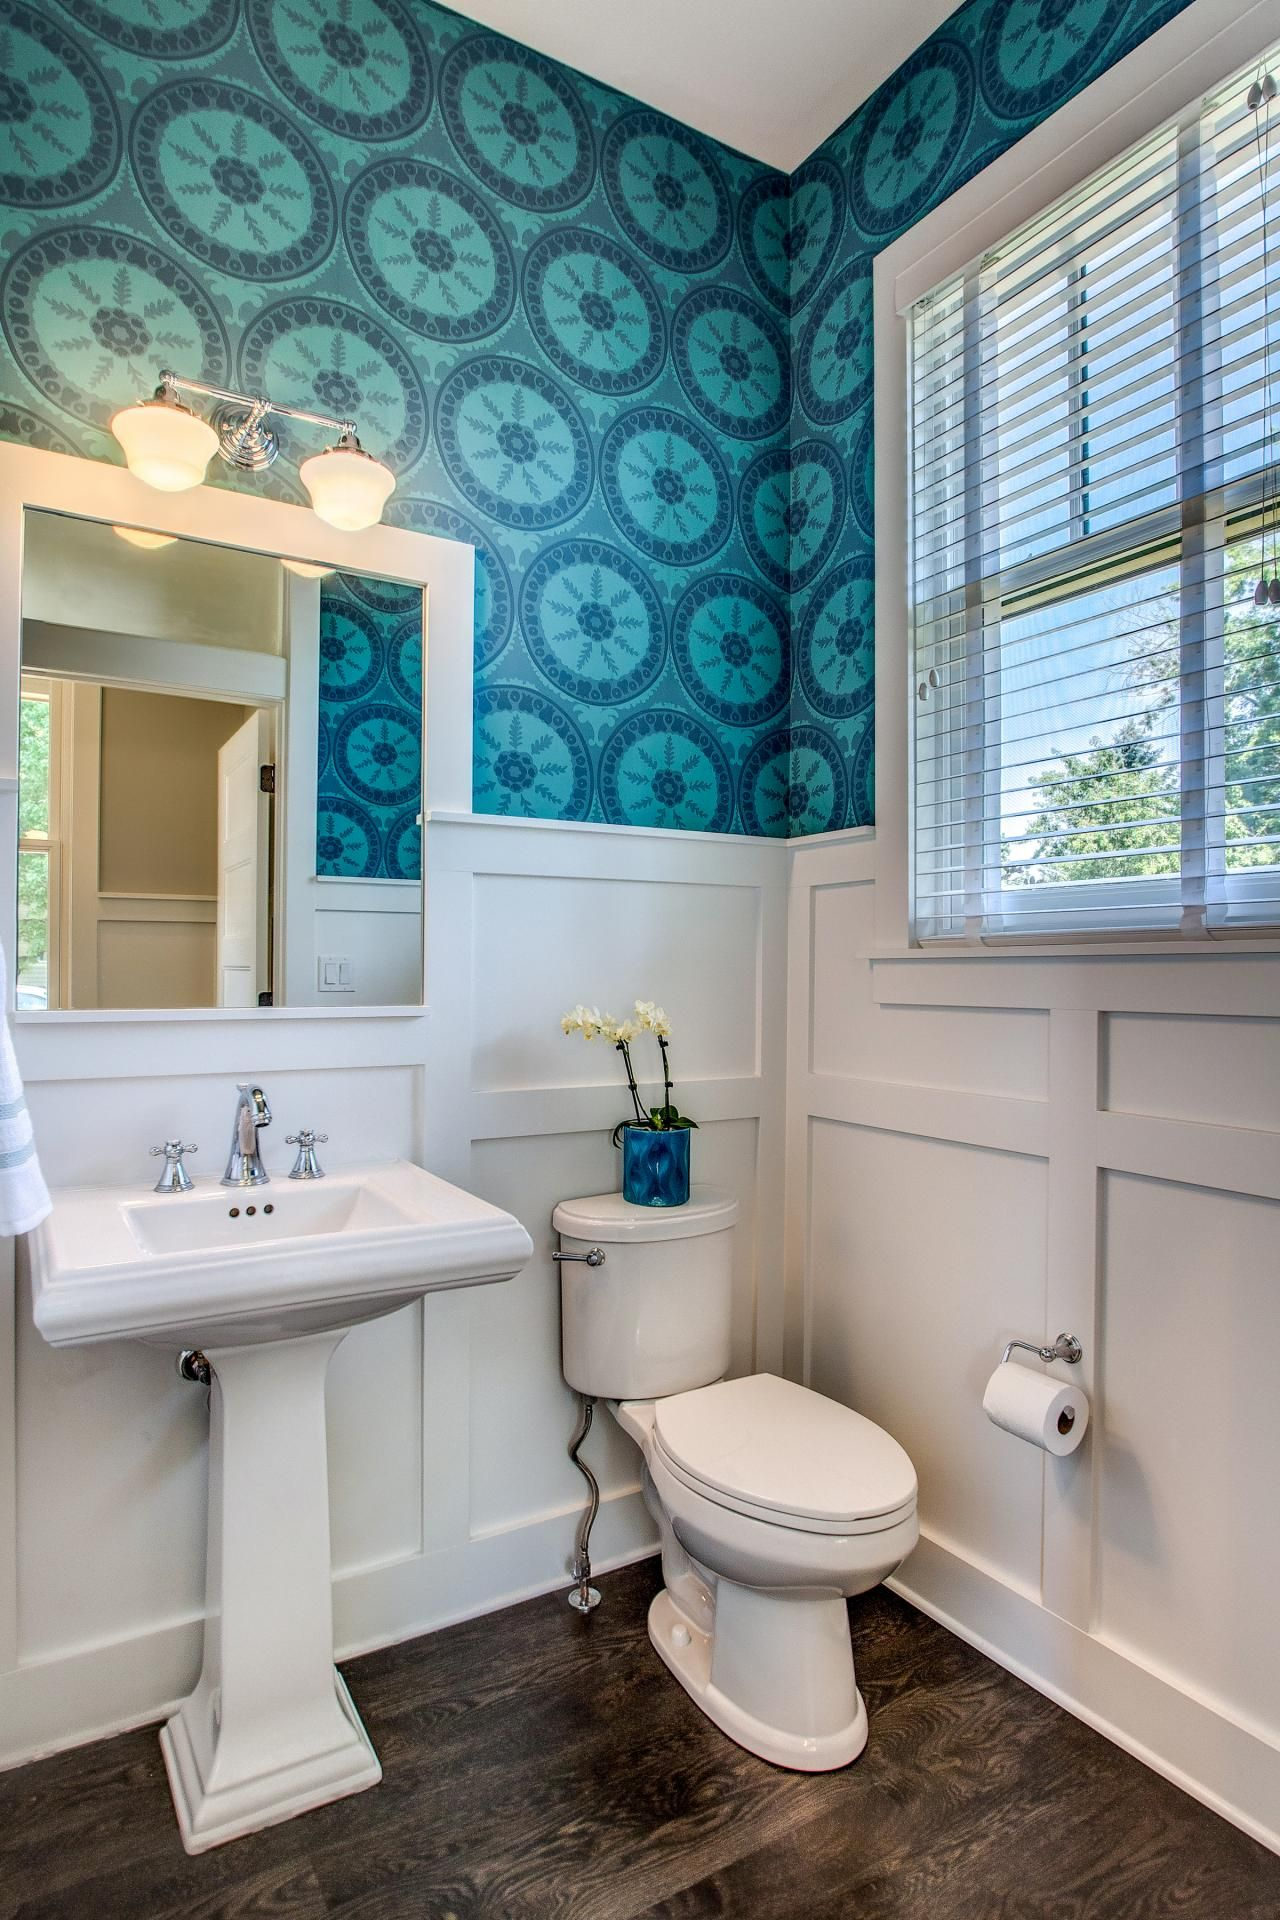 Powder Room With Blue Patterned Wallpaper And White Wainscoting